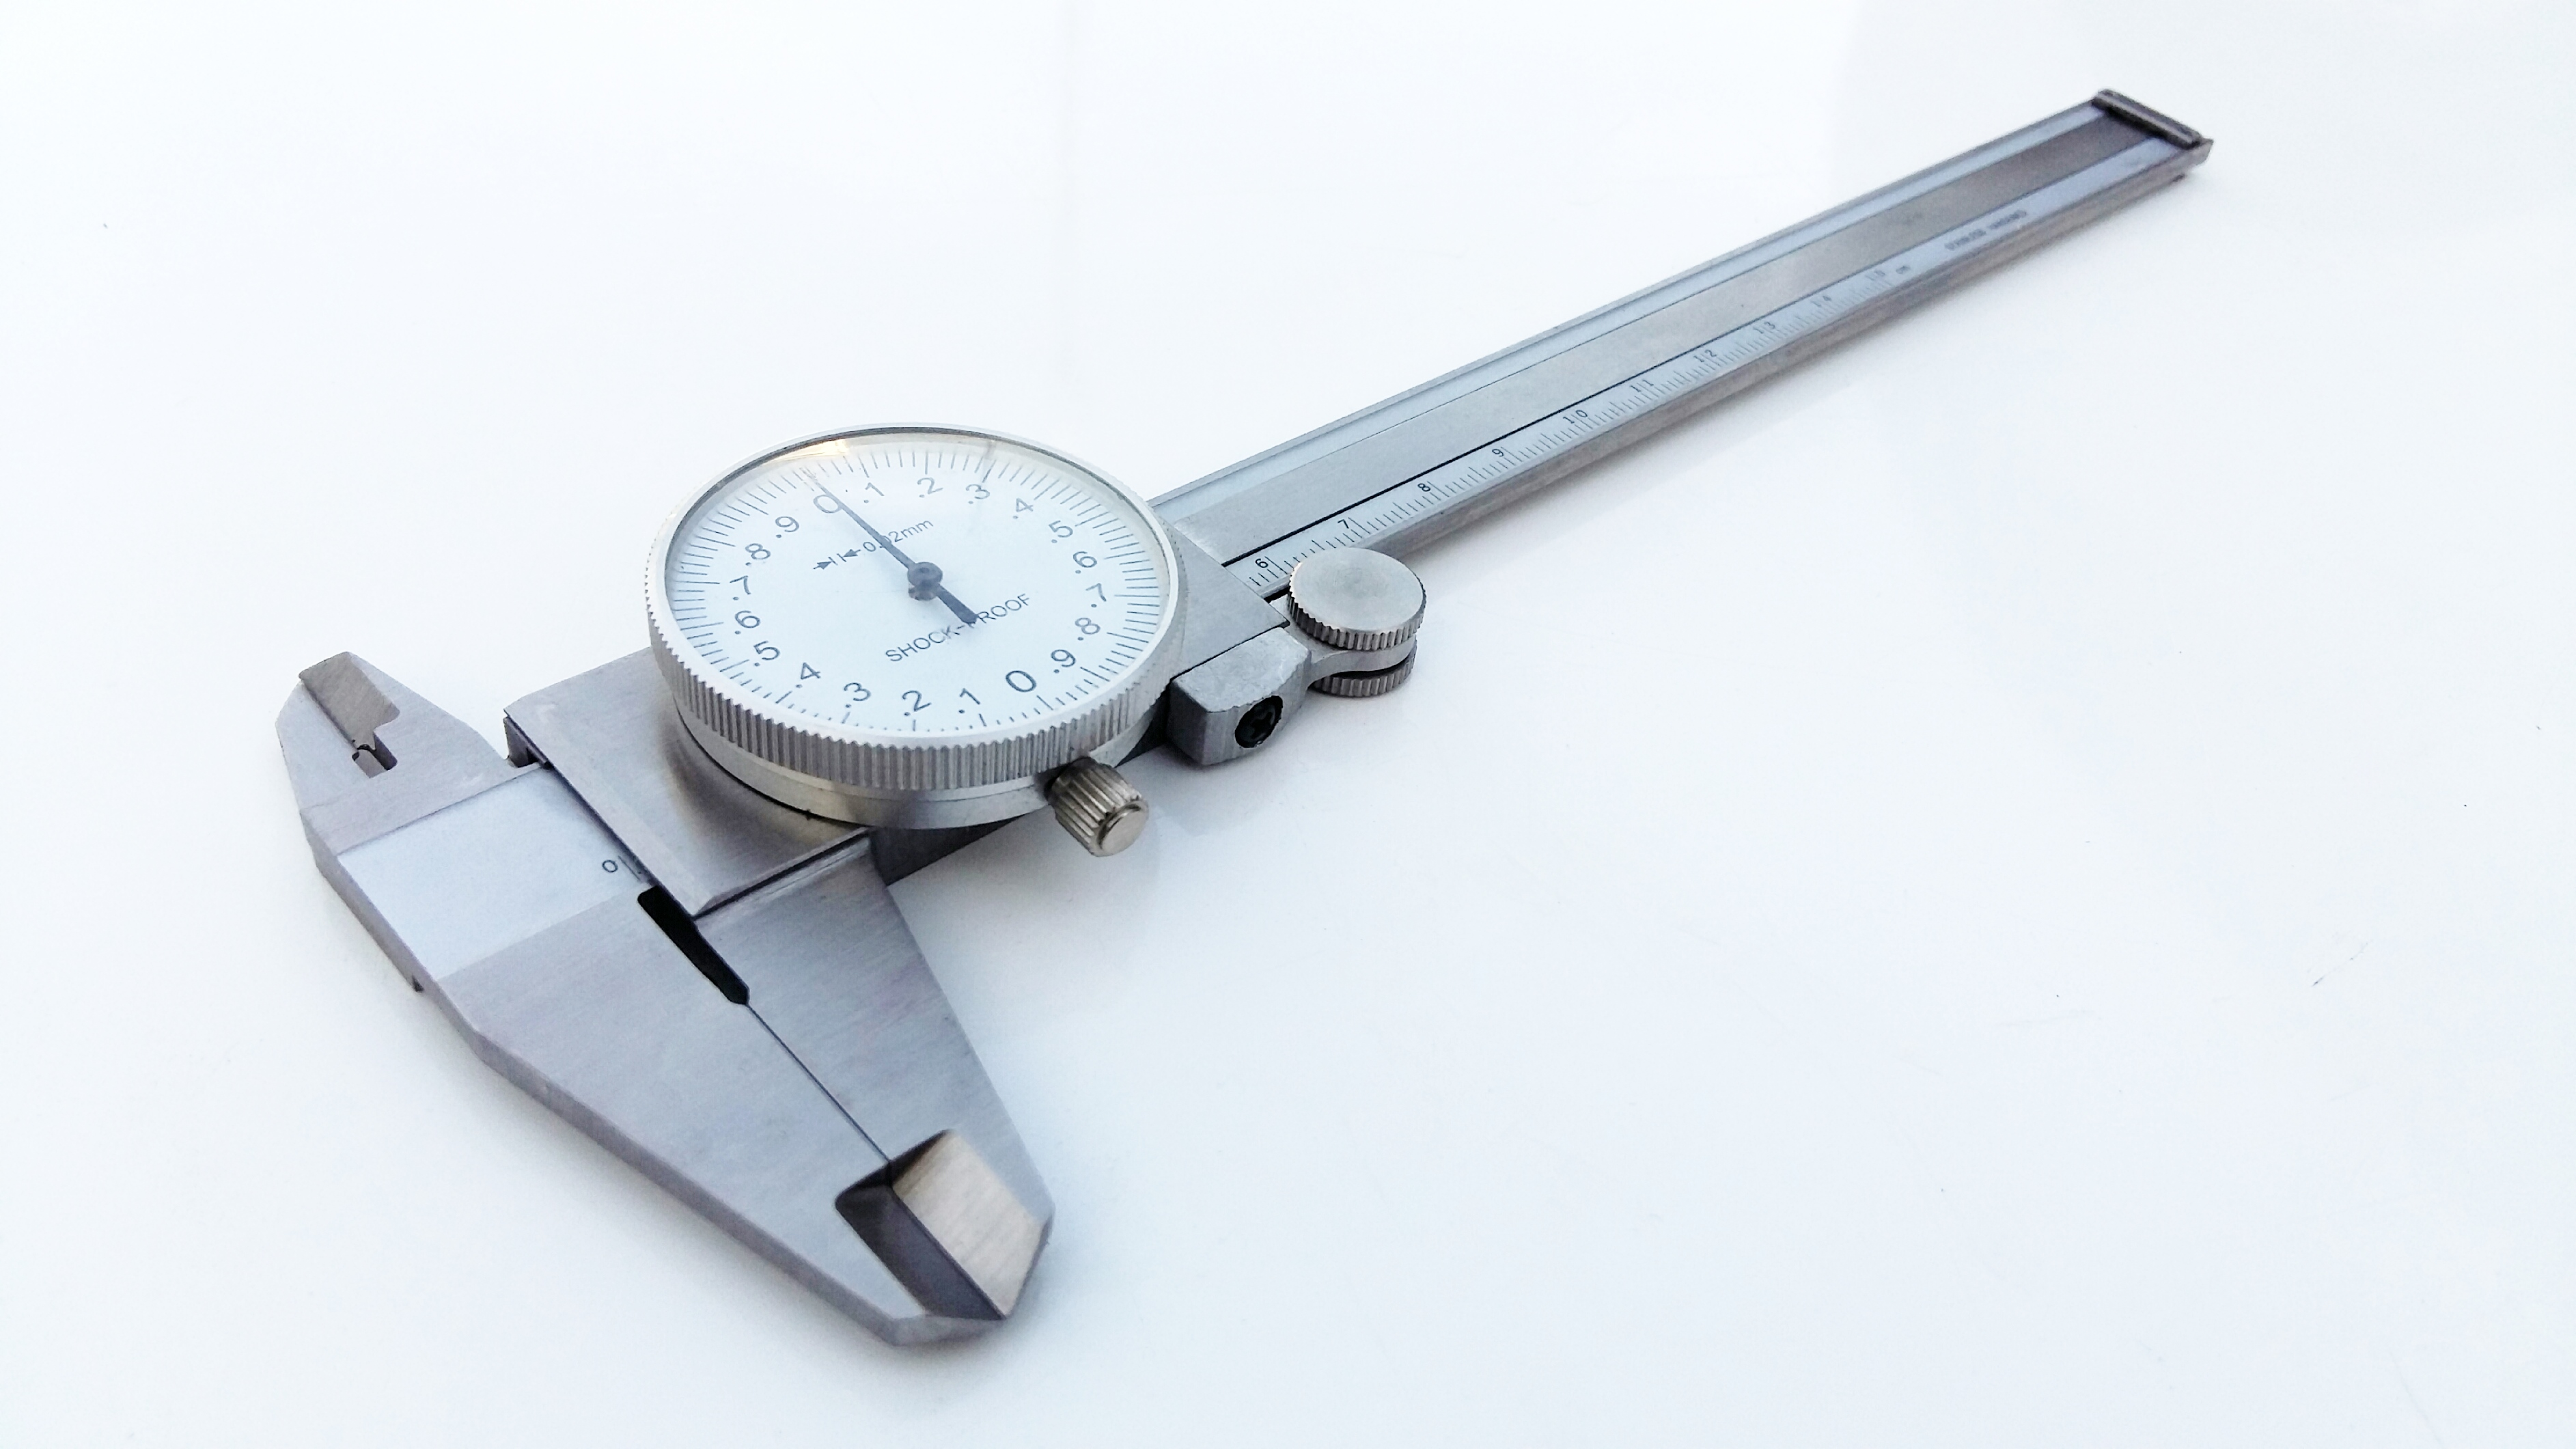 Dial Caliper Metric 0-150mm Stainless Hardened